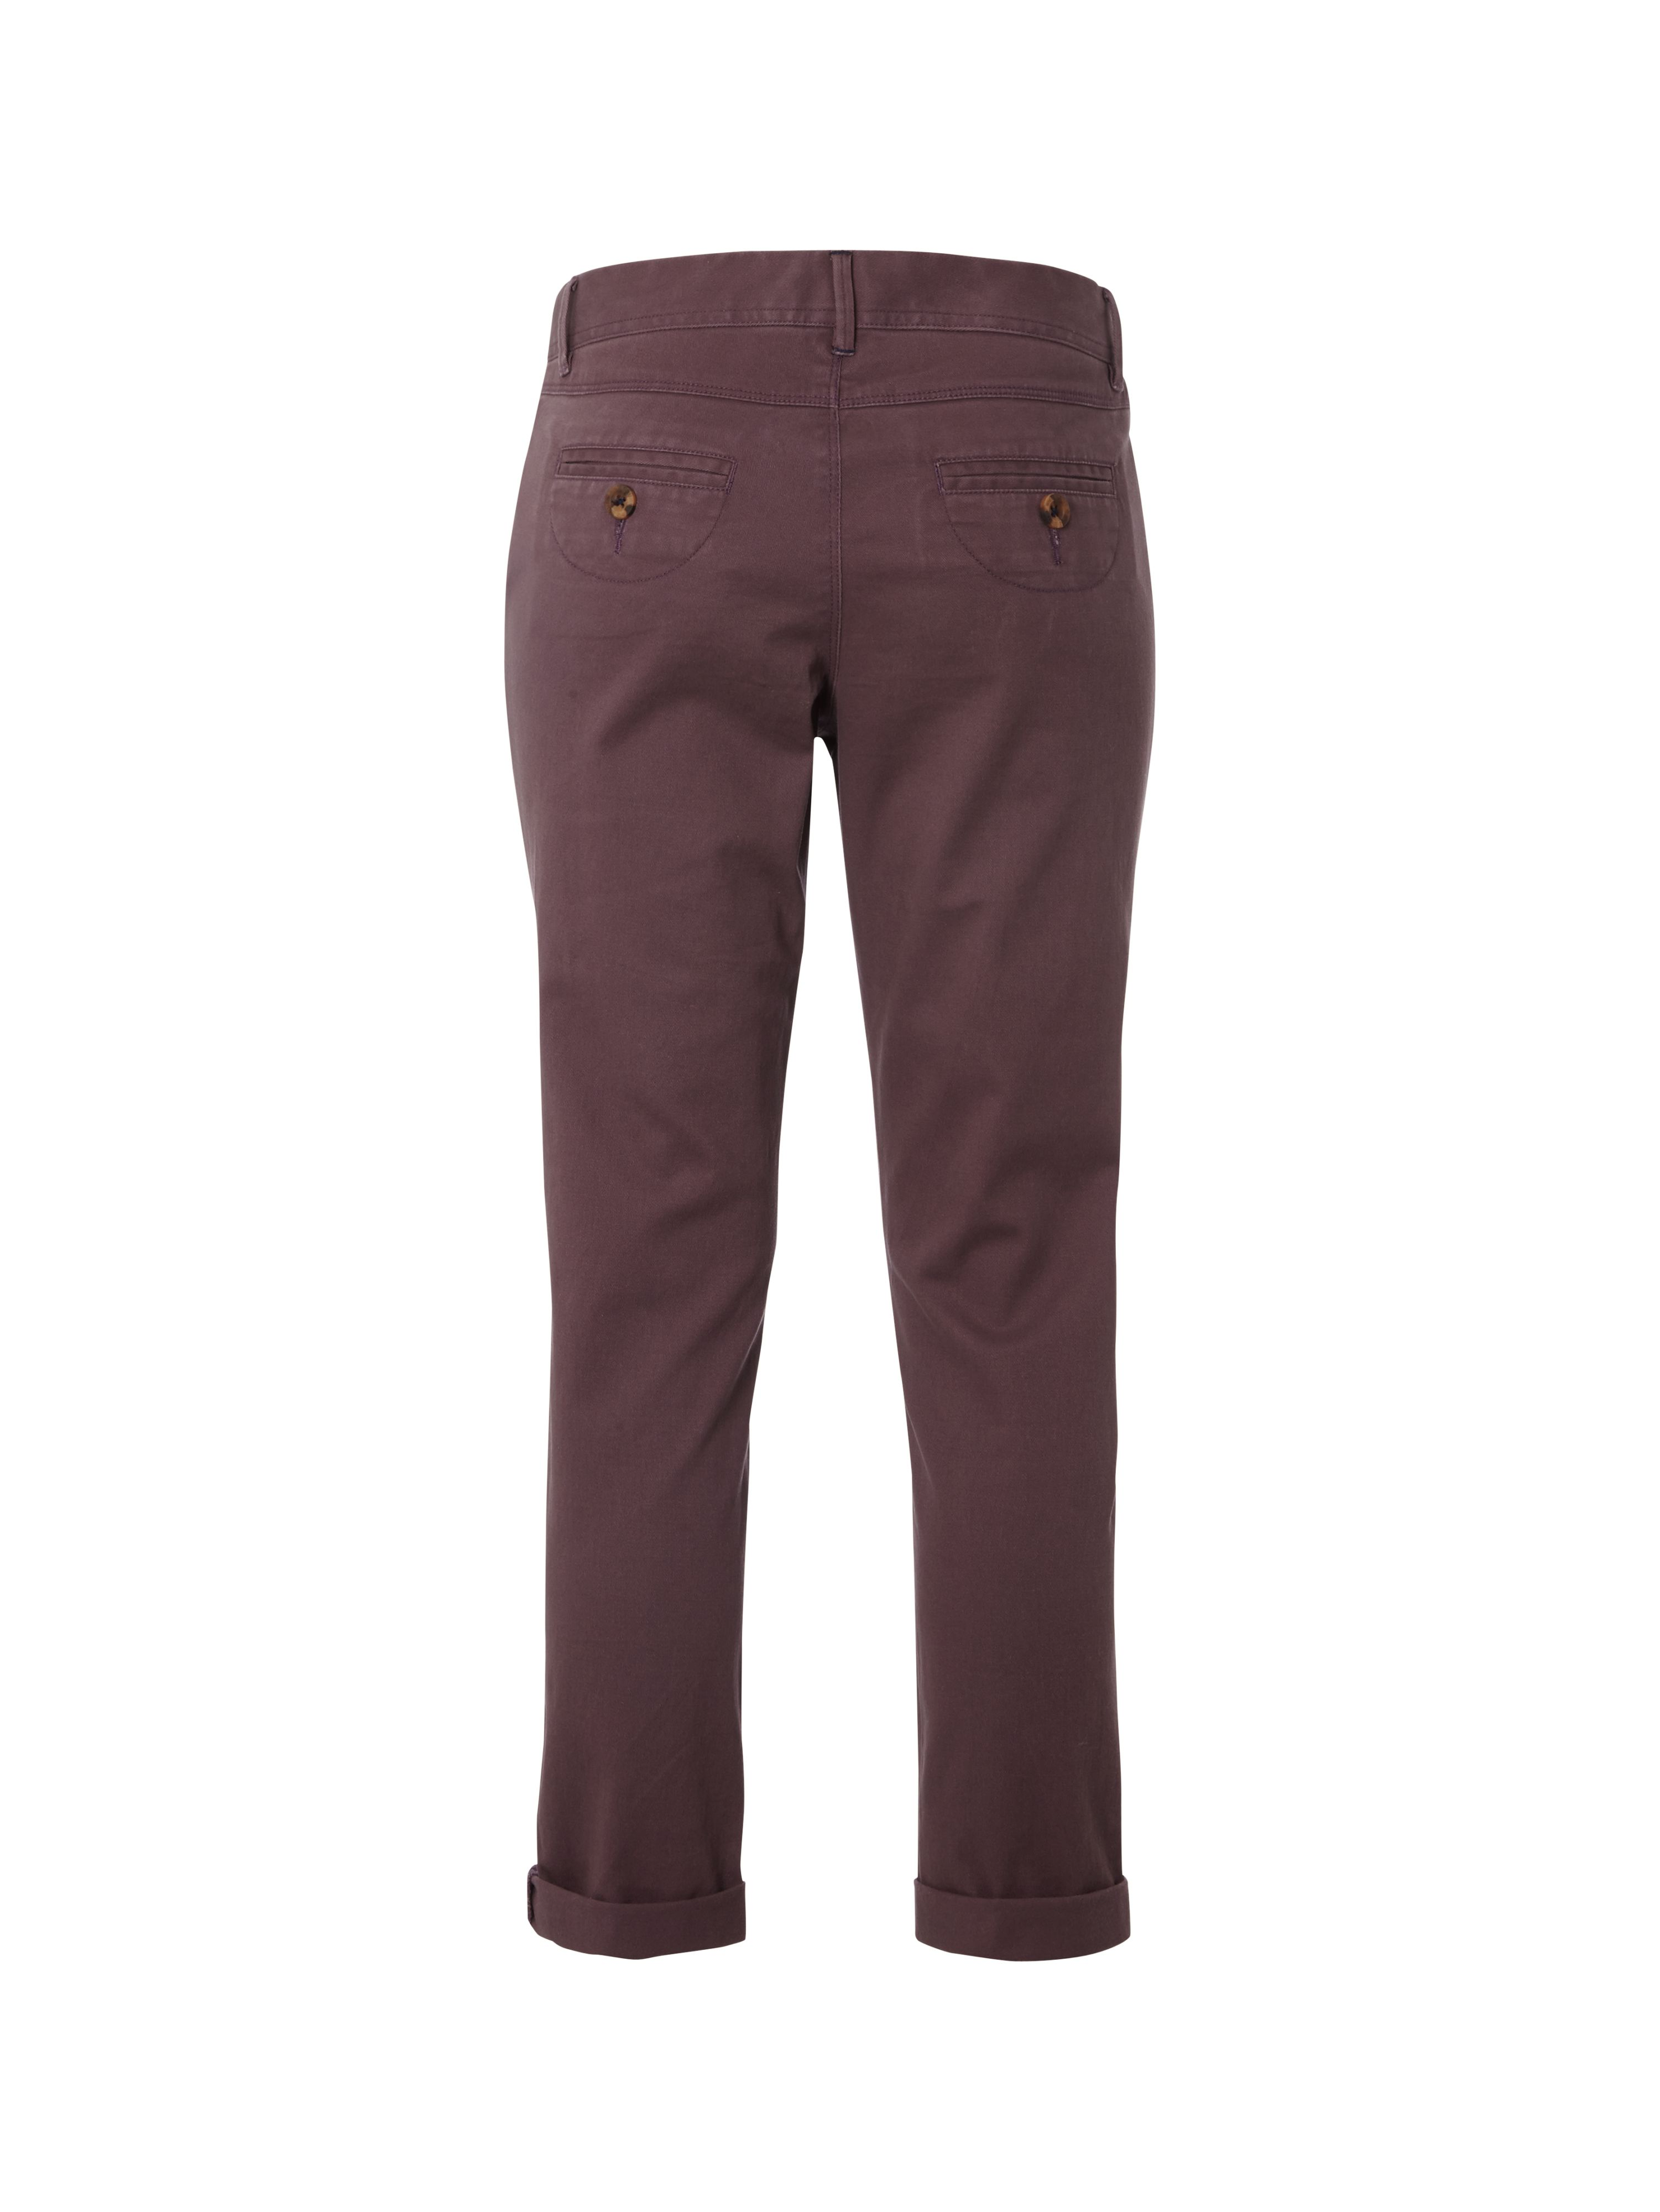 Day tripper tapered 7/8 chino